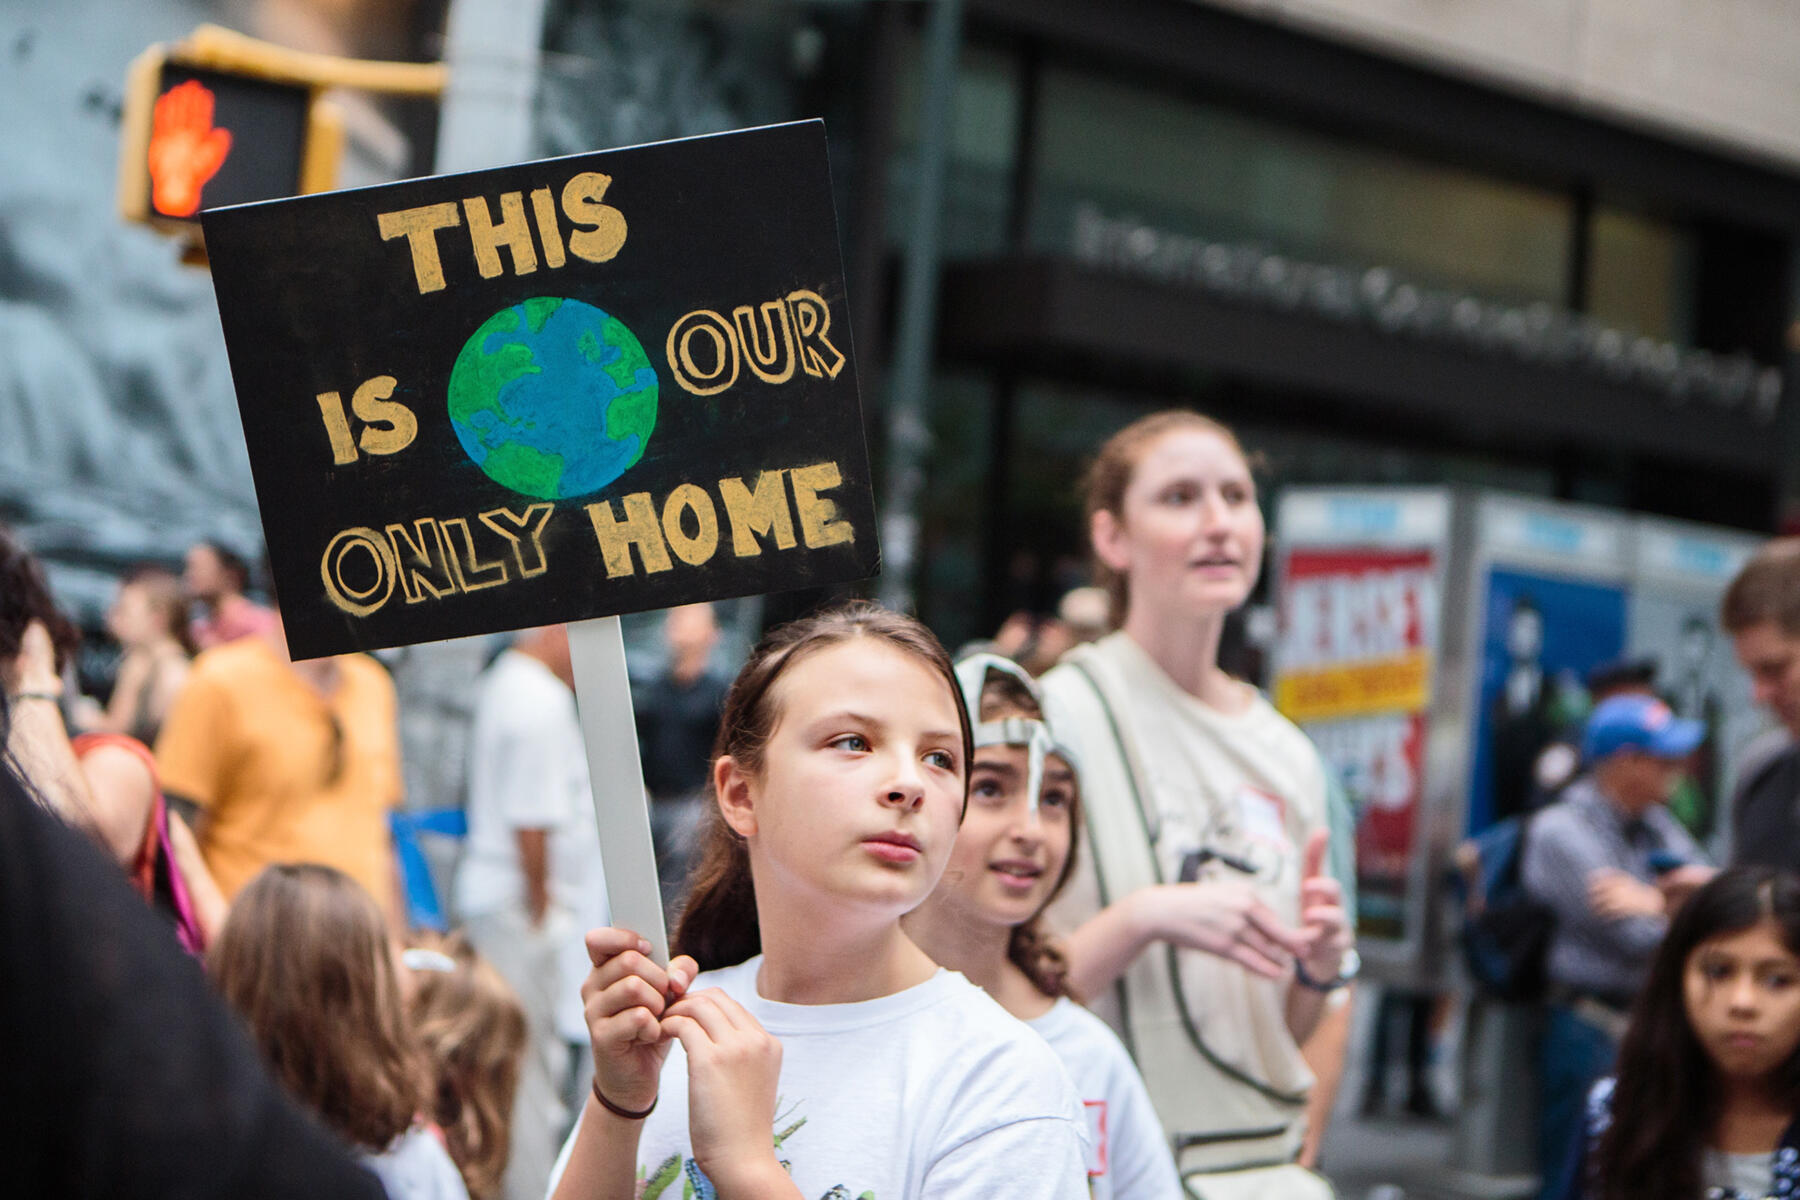 An Audubon member holds a sign at the People's Climate March in NYC in 2014. Patricia Monteiro